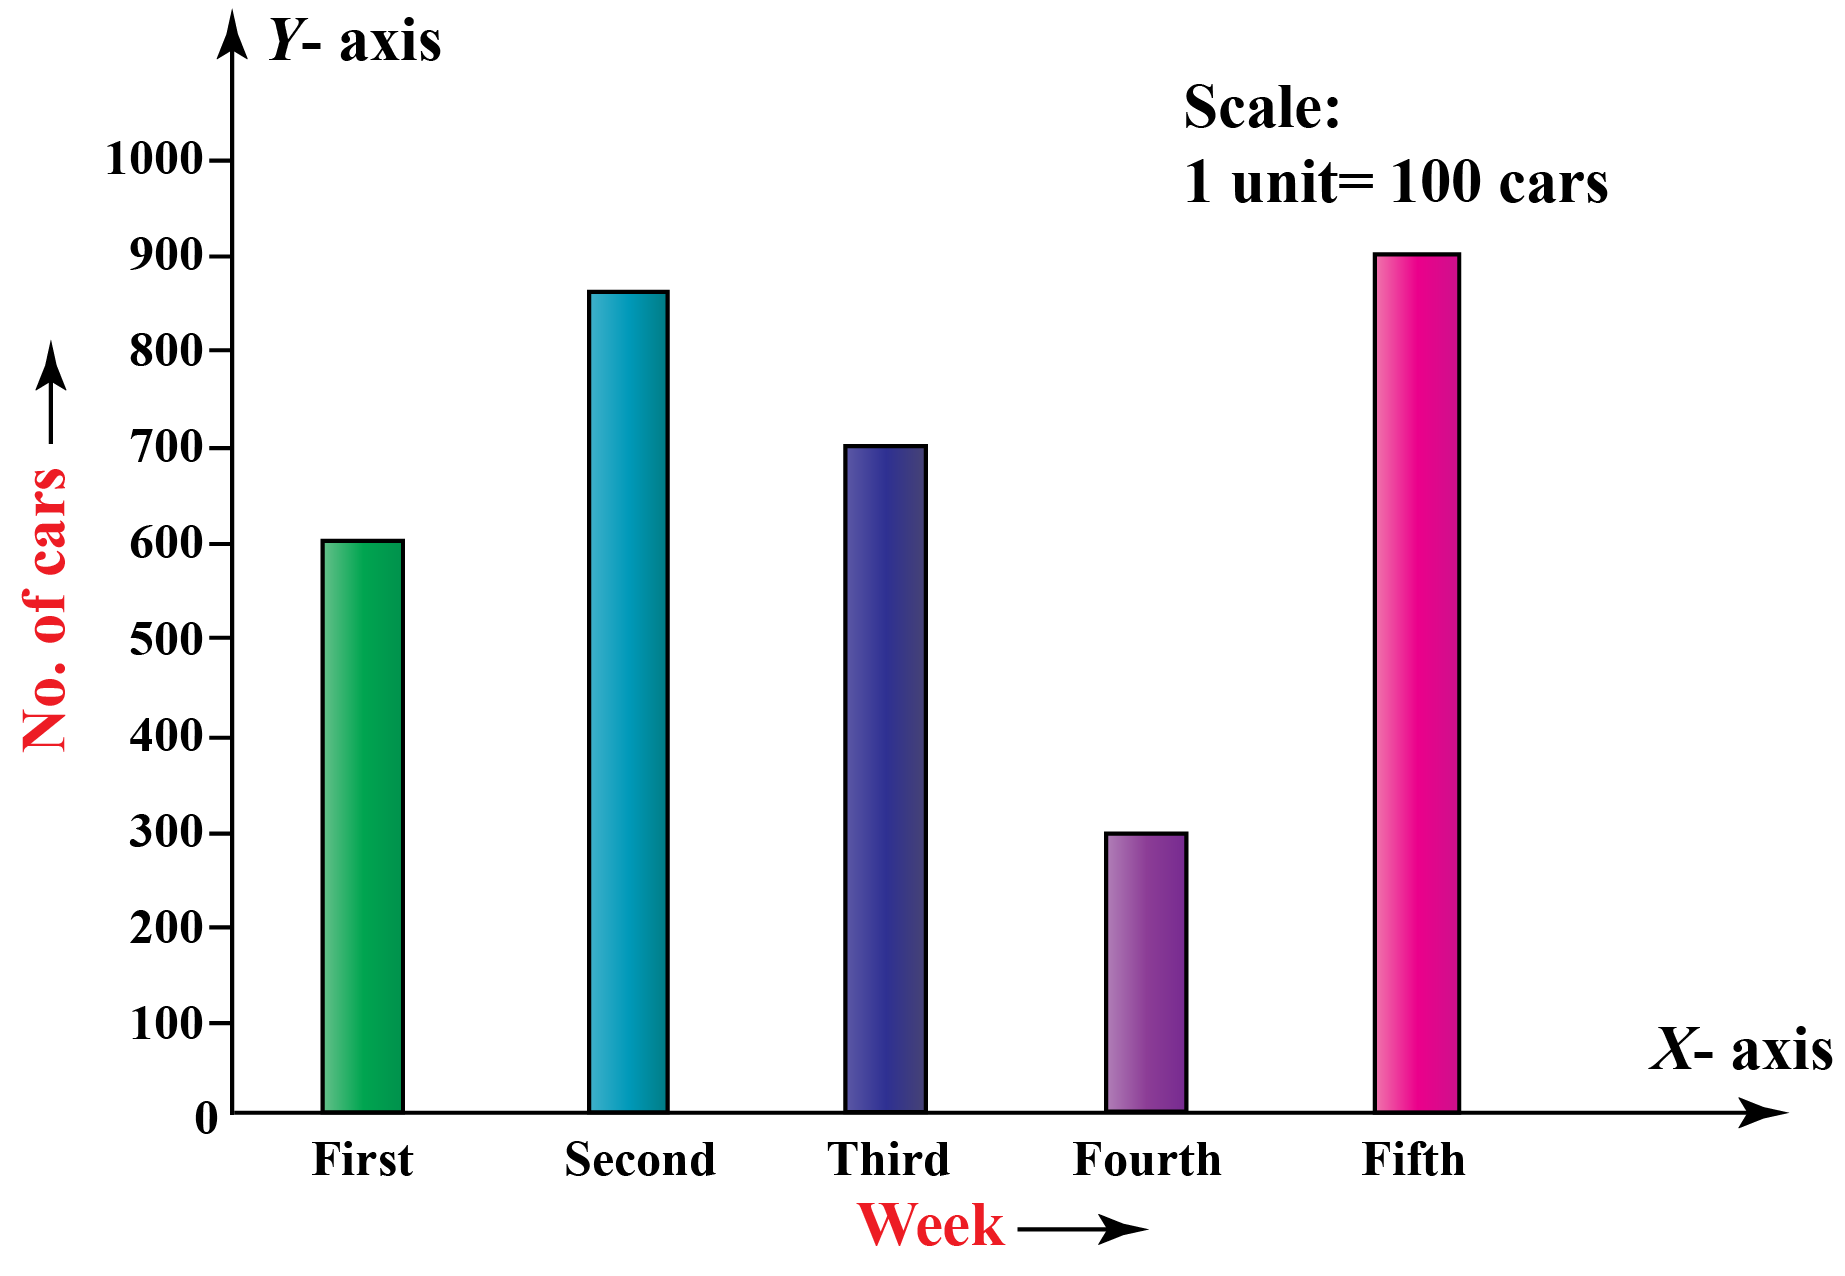 Bar graph shows the number of carsmanufactured by a factory for five consecutive weeks